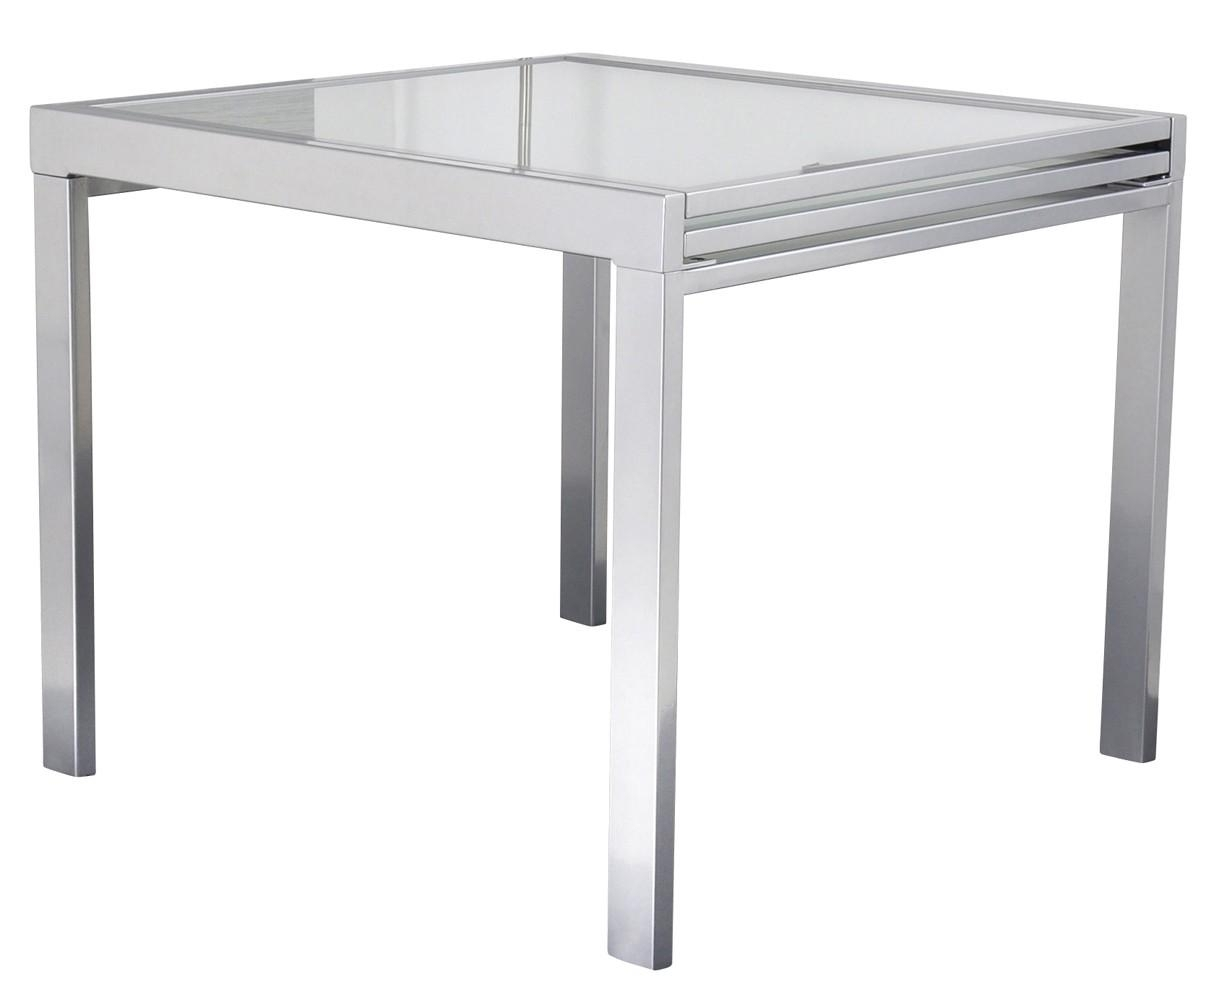 Les tendances table carr e extensible grise for Table a manger carre extensible